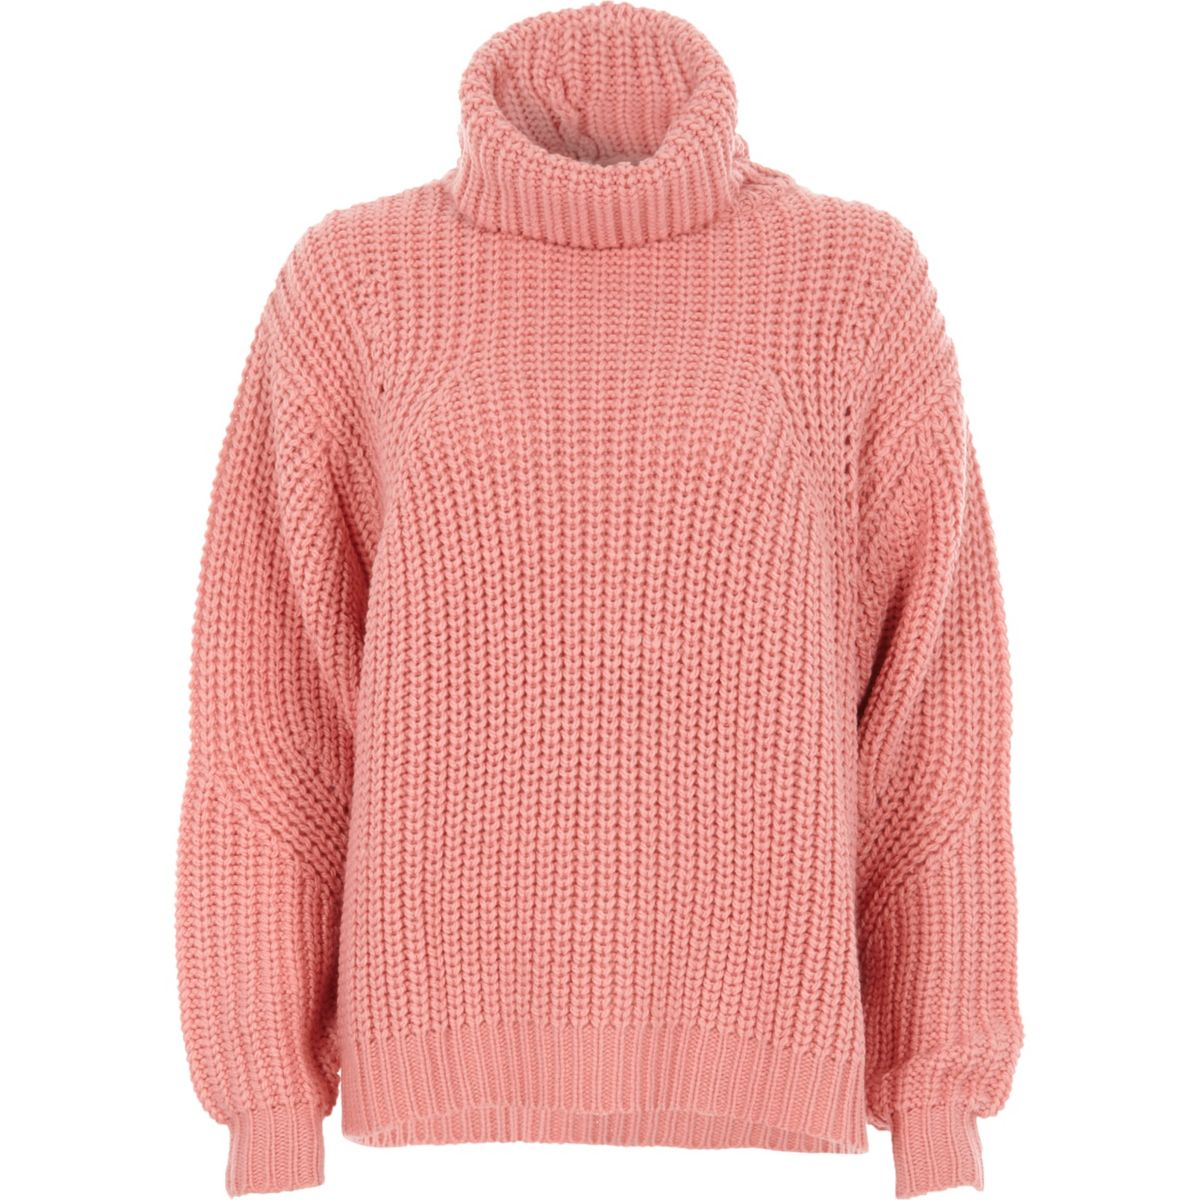 Pink chunky rib knit roll neck sweater